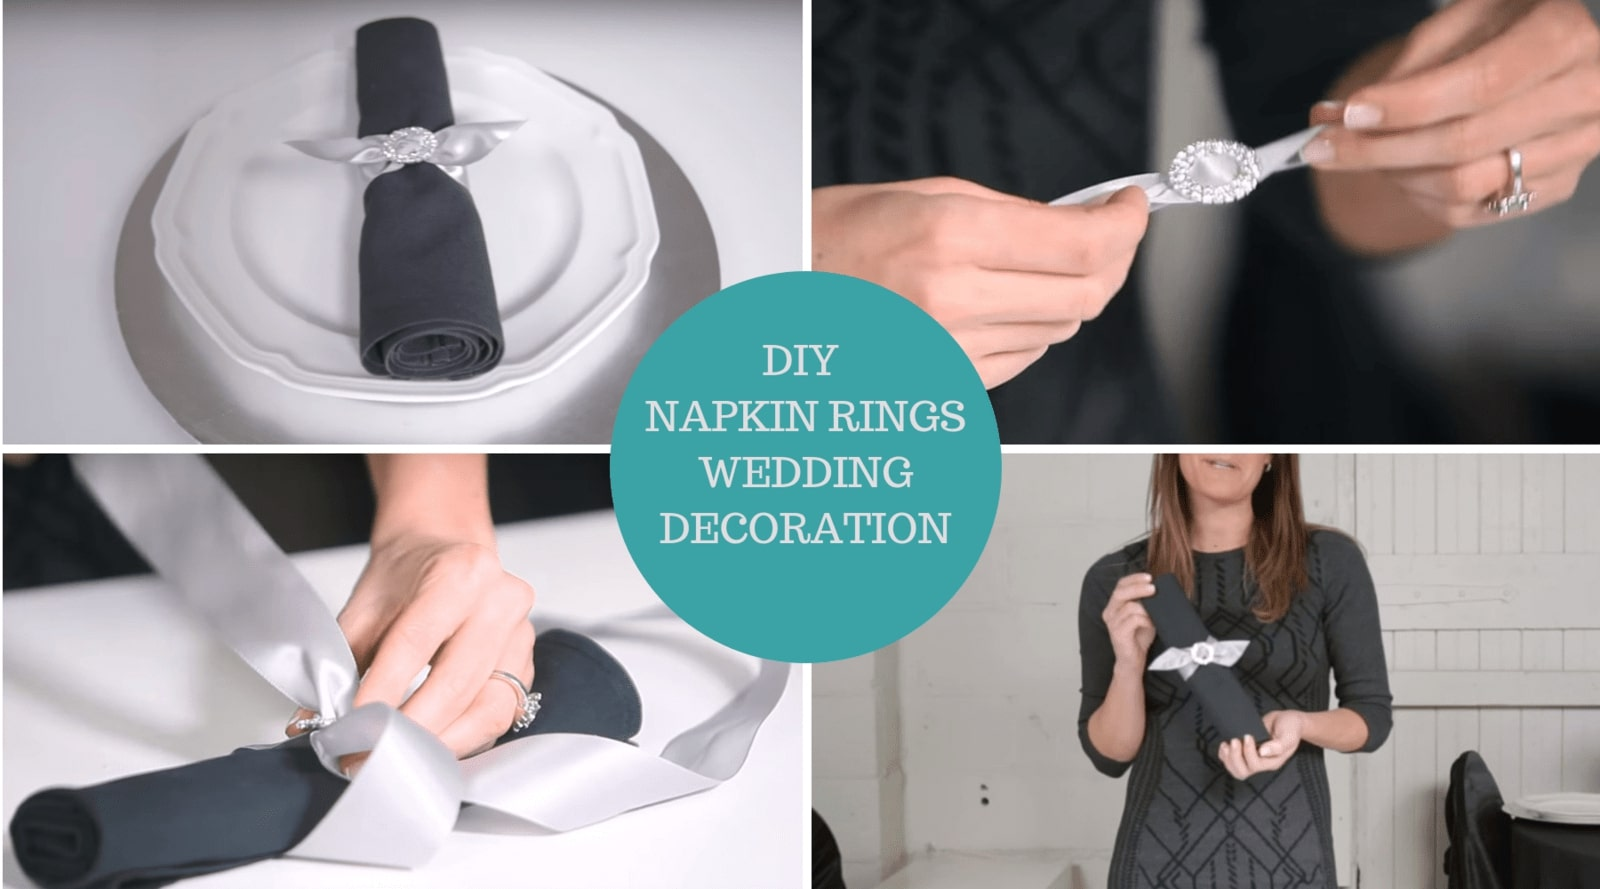 DIY Napkin Ring Wedding Décor Tutorial